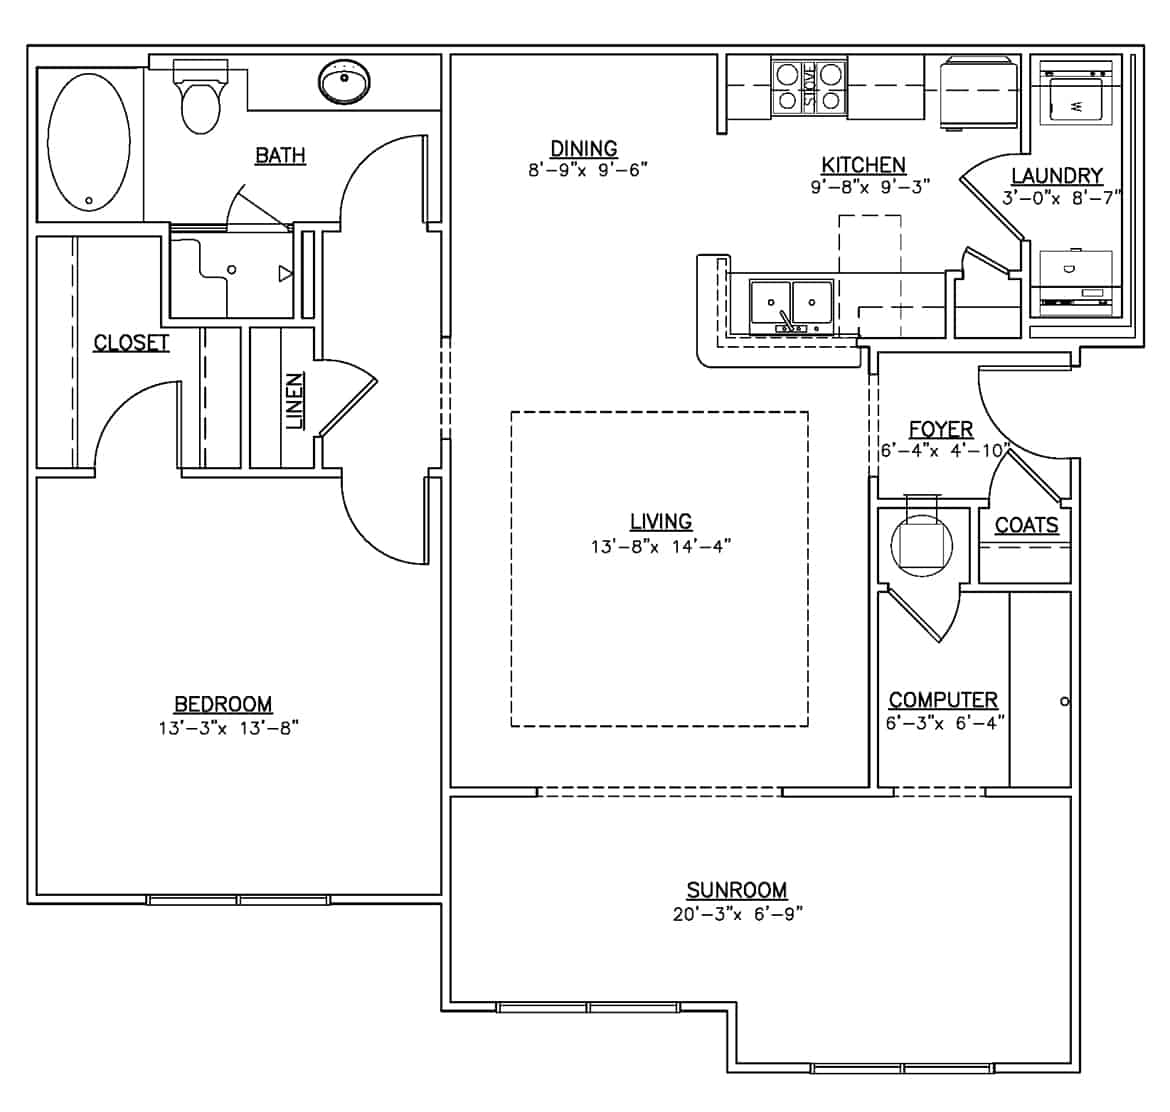 The other one bedroom floor plan